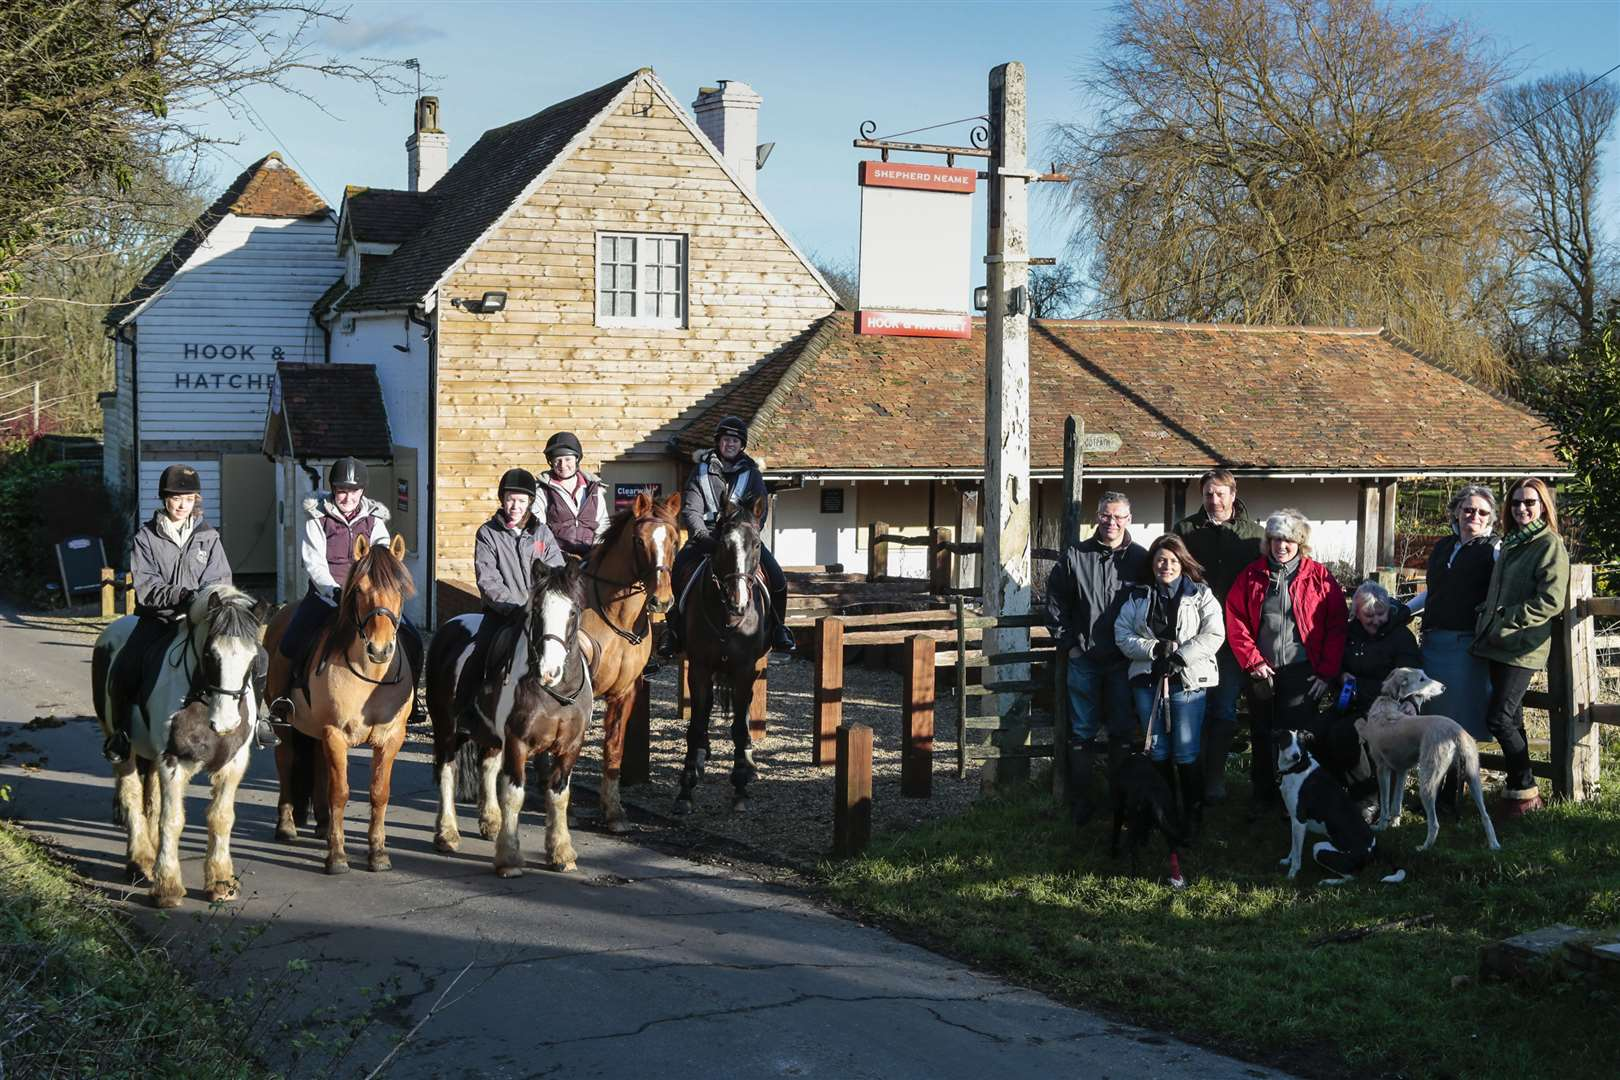 Villagers and business owners who are pulling together to buy the pub